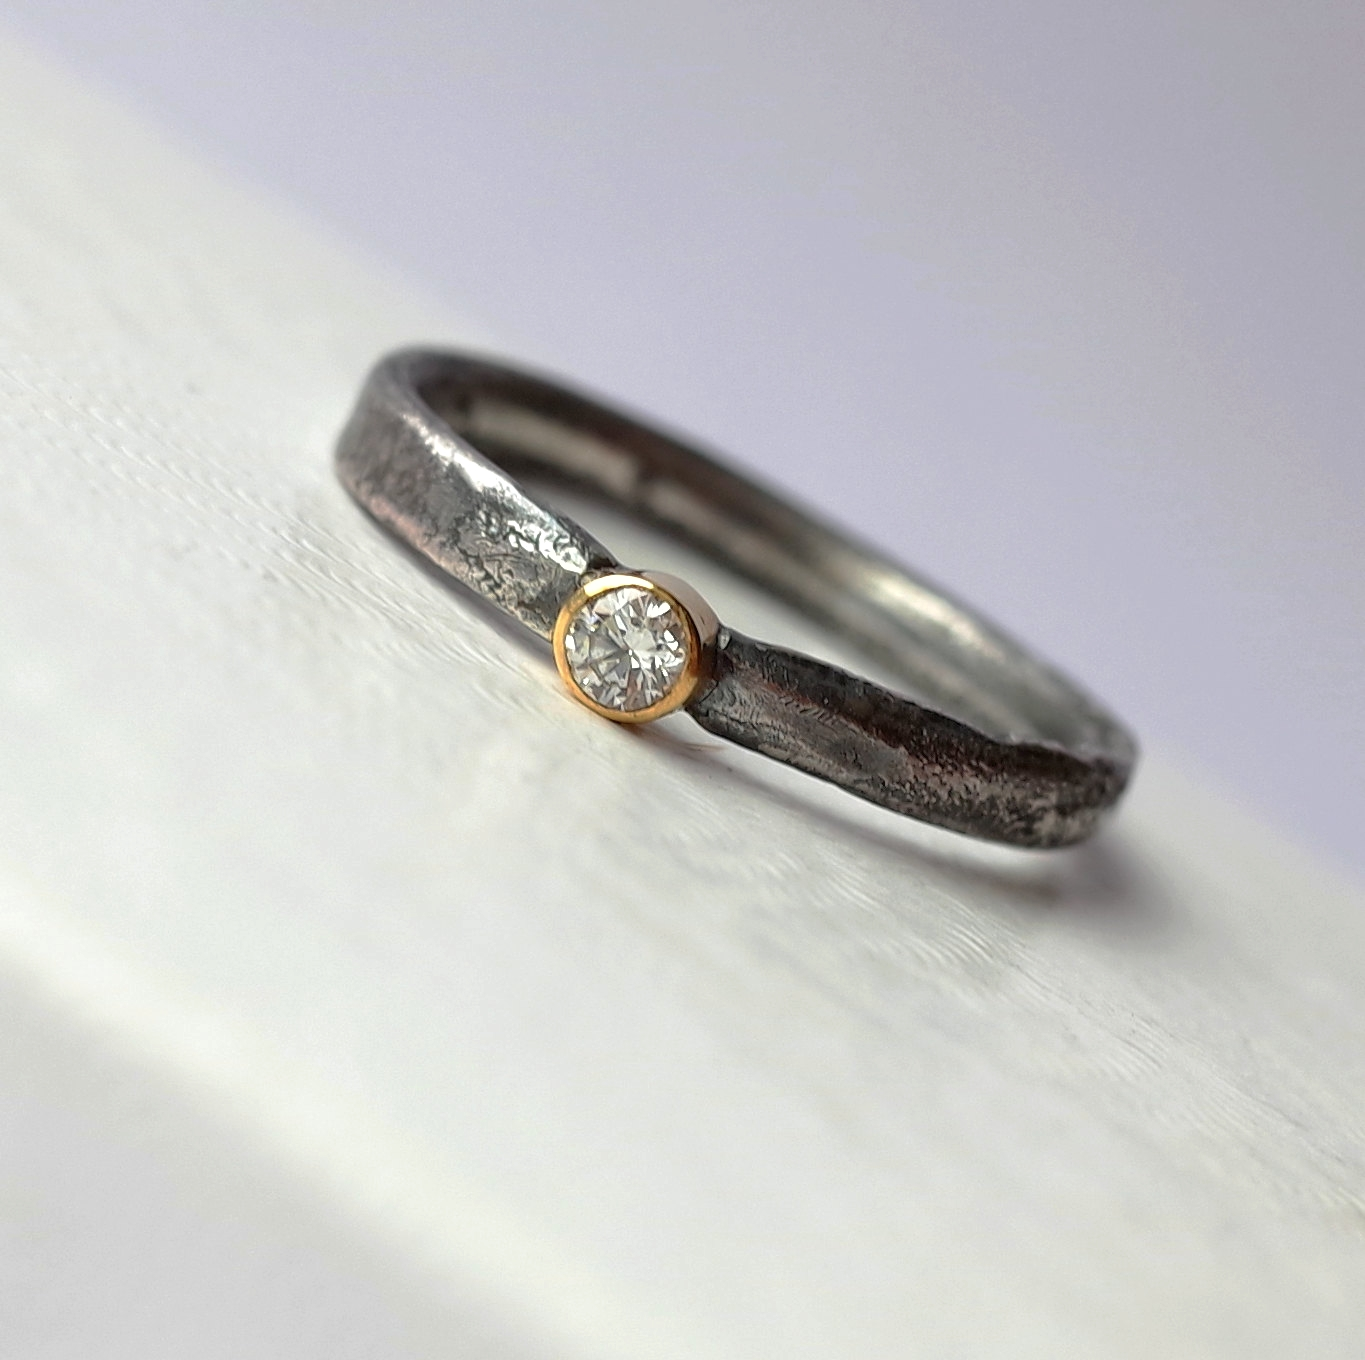 Rustic Diamond: Rustic Diamond With 3mm Diamond